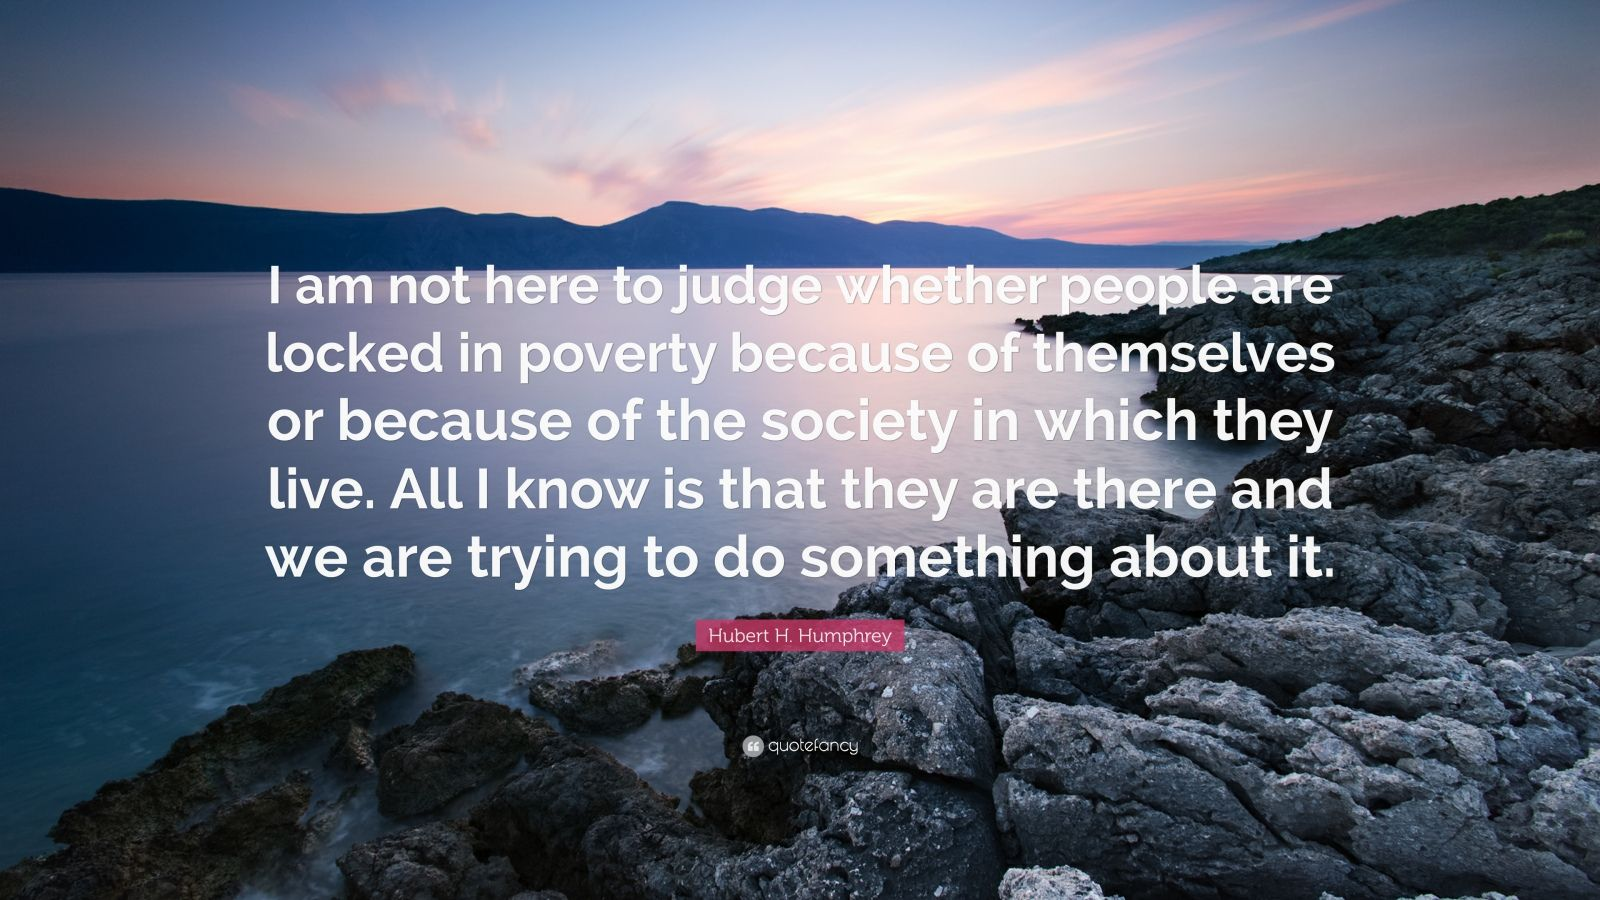 """Hubert H. Humphrey Quote: """"I am not here to judge whether people are locked in poverty because of themselves or because of the society in which they live. All I know is that they are there and we are trying to do something about it."""""""